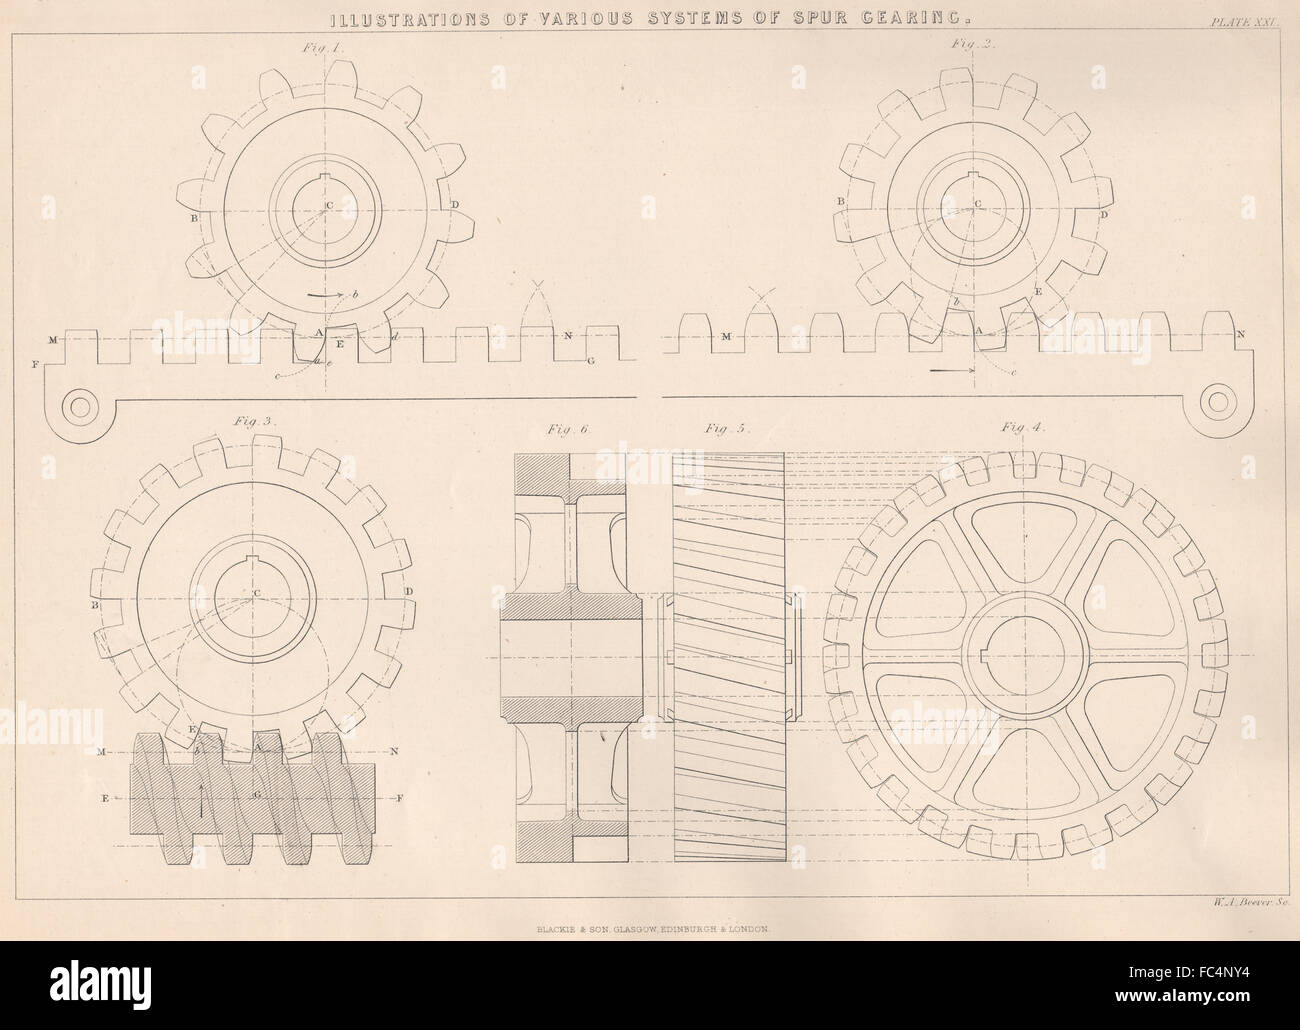 VICTORIAN ENGINEERING DRAWING. Spur gearing system illustrations, print 1876 - Stock Image